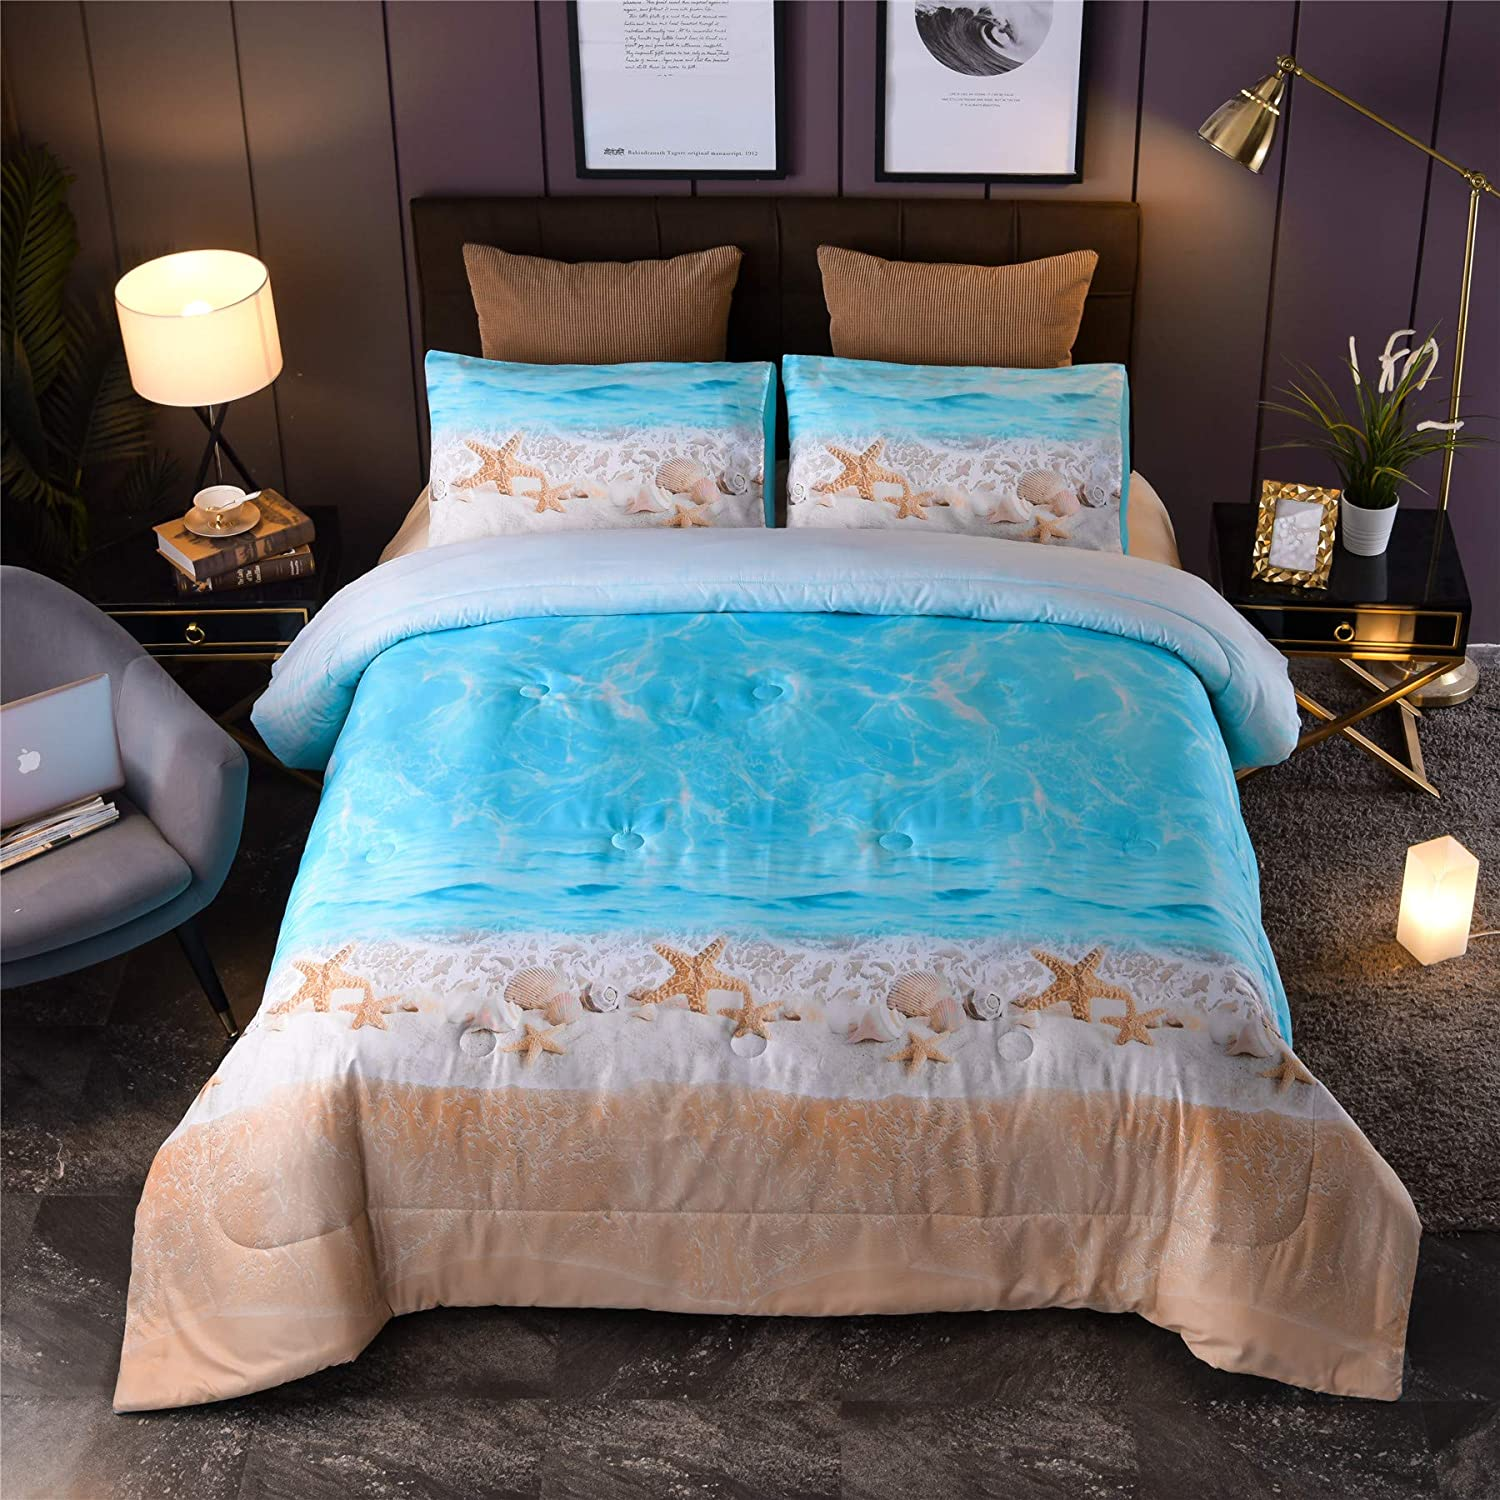 A Nice Night Boho Bohemian Comforter Set, Sand Star Ocean Beach Printed, Soft Microfiber Queen Bedding Set (Boho-Sand)